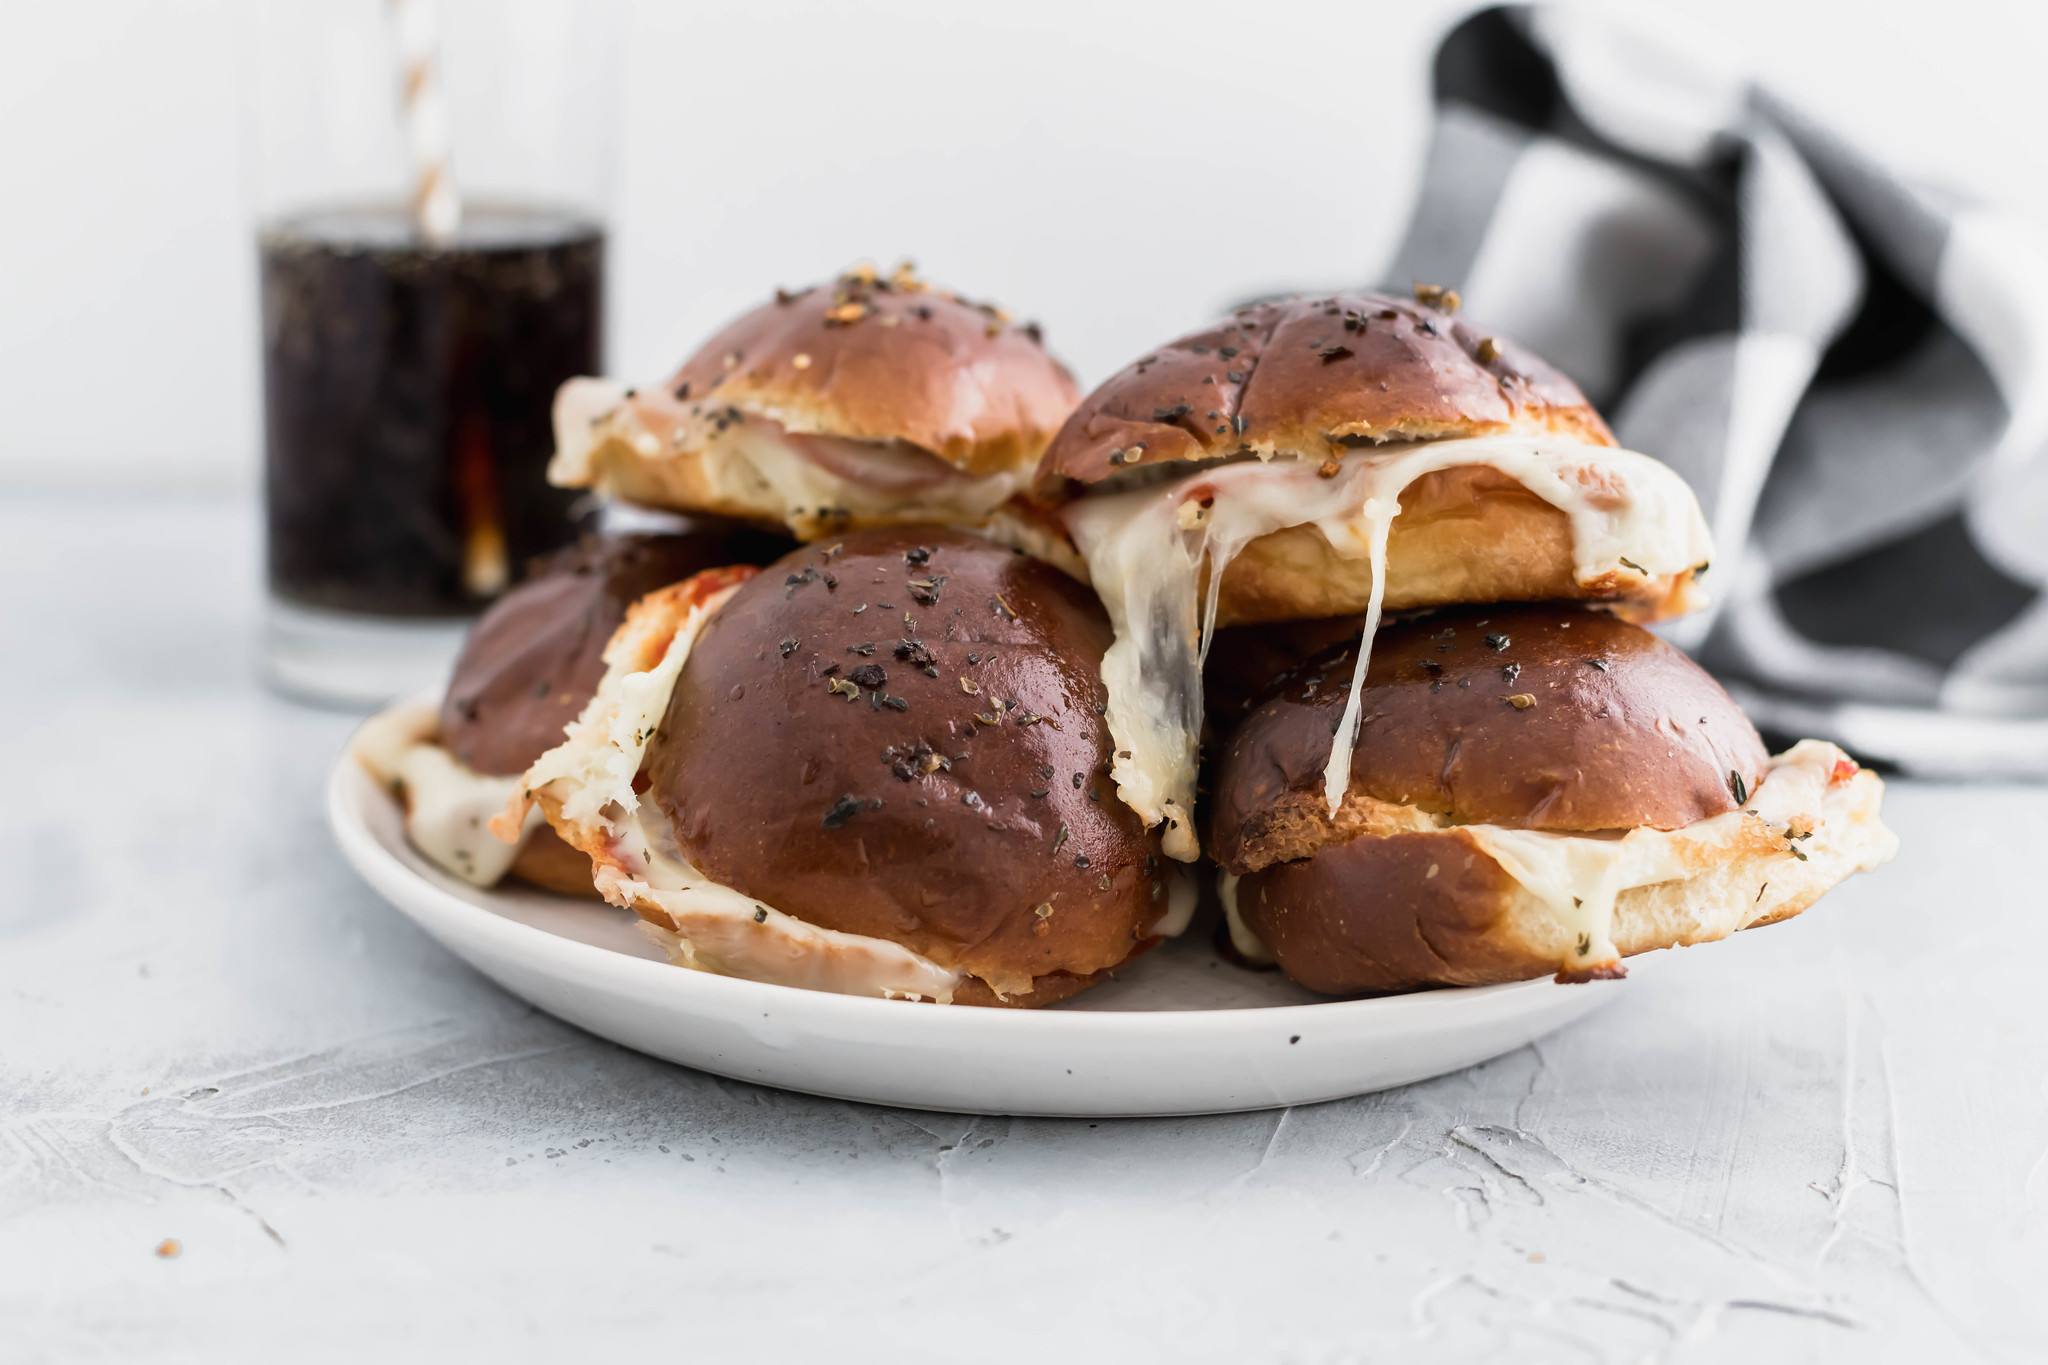 Need a simple dinner idea? These Easy Pepperoni Pizza Sliders are the perfect 30 minute meal or appetizer that the whole family will enjoy.